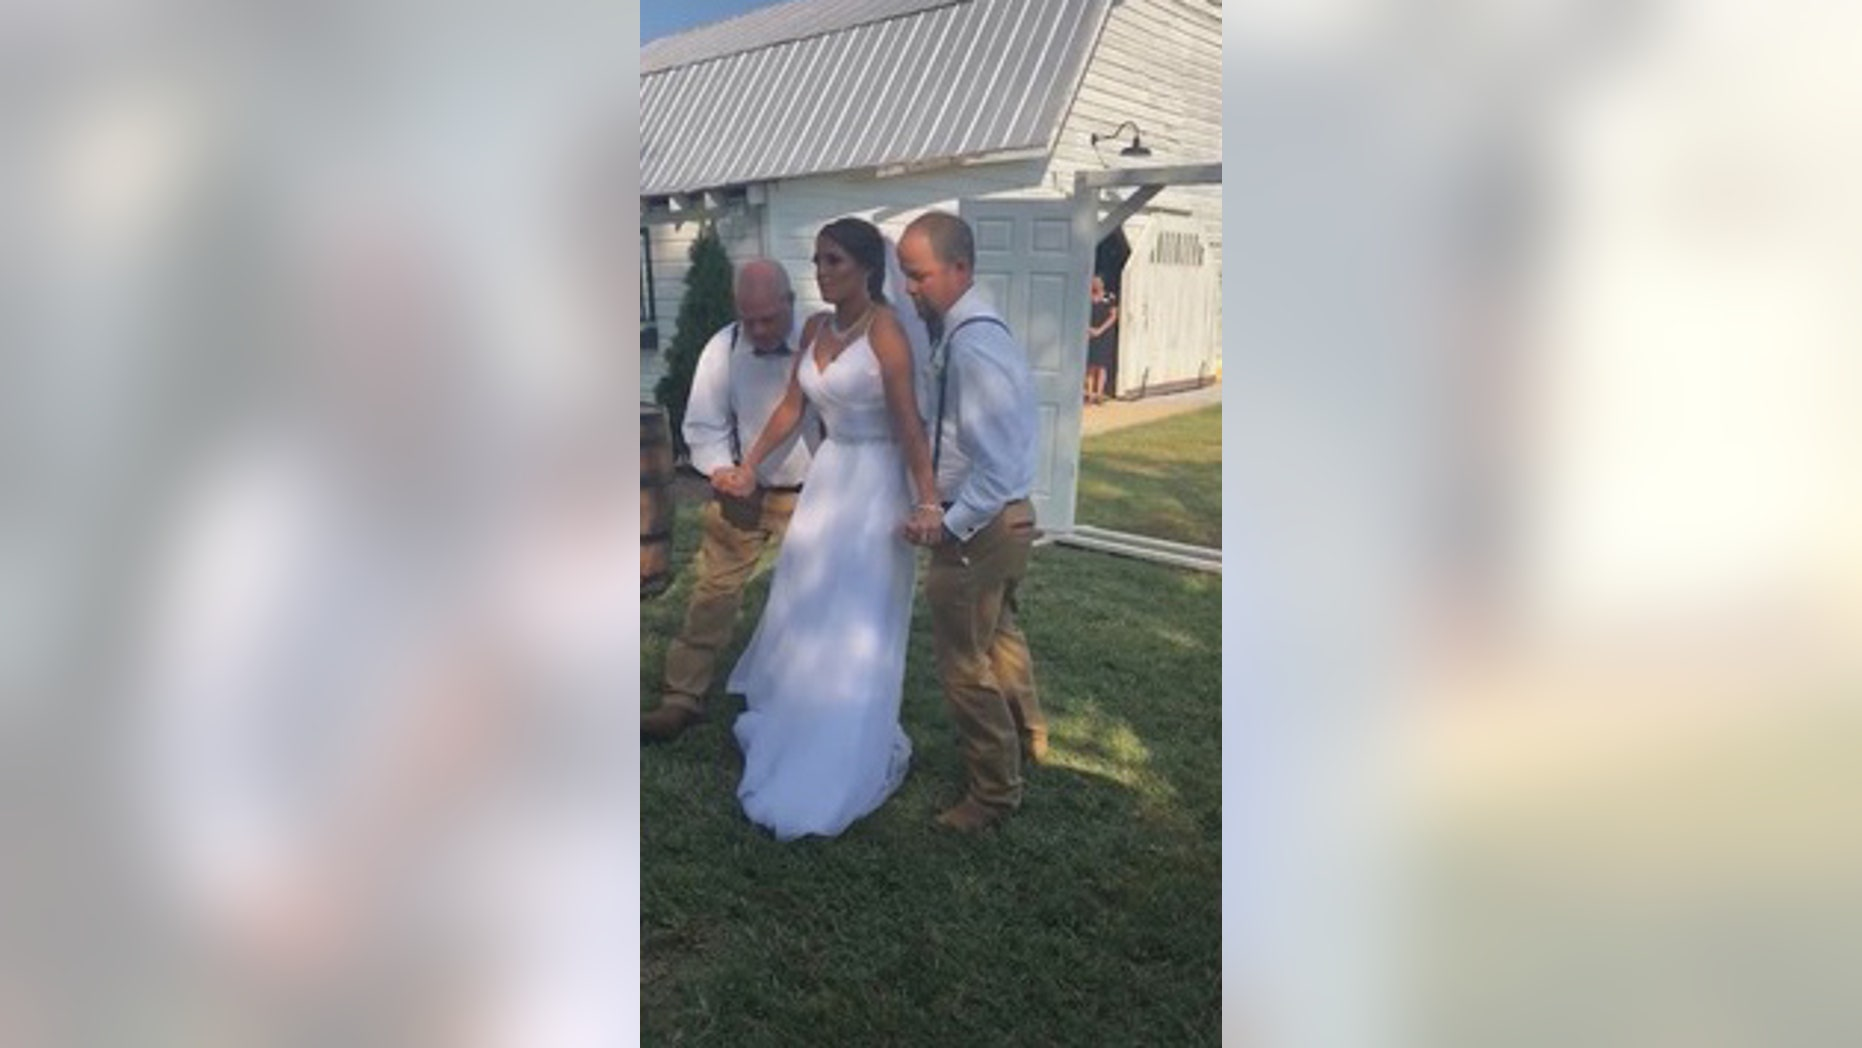 Paralyzed Bride Walks Down Aisle 3 Years After Horrific